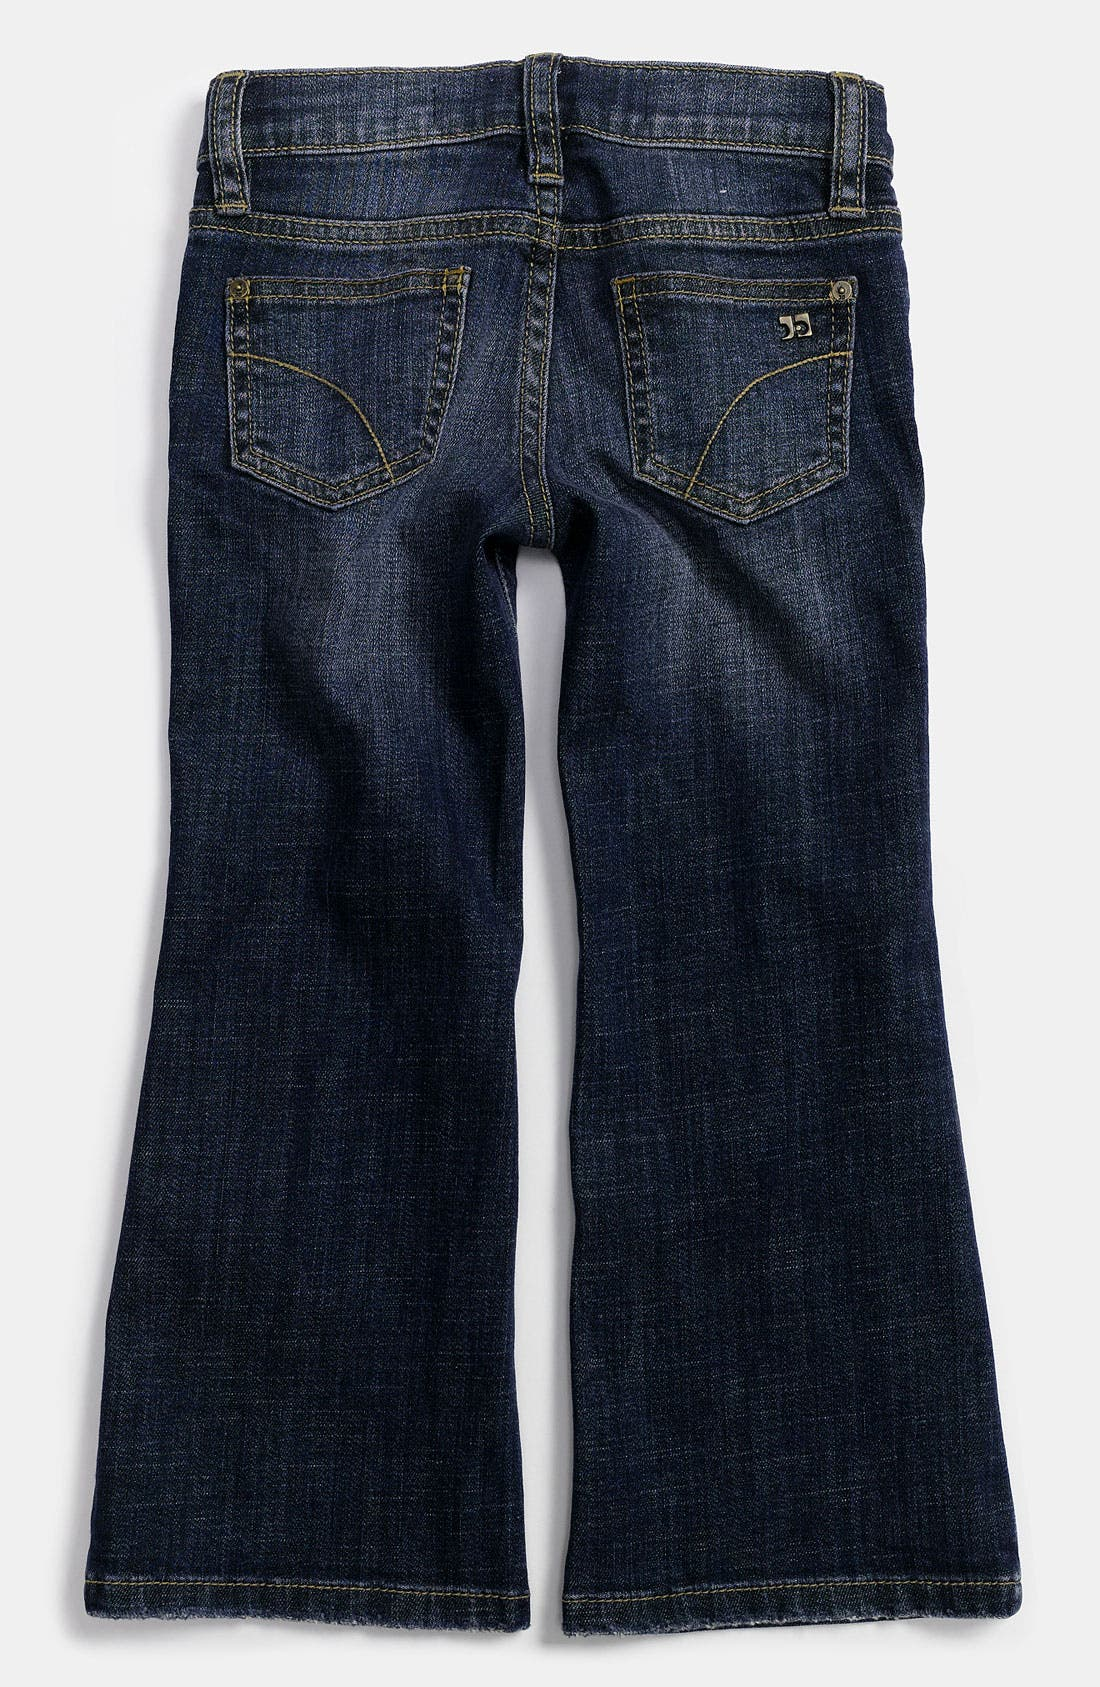 Alternate Image 1 Selected - Joe's 'Rockstar' Bootcut Jeans (Infant)